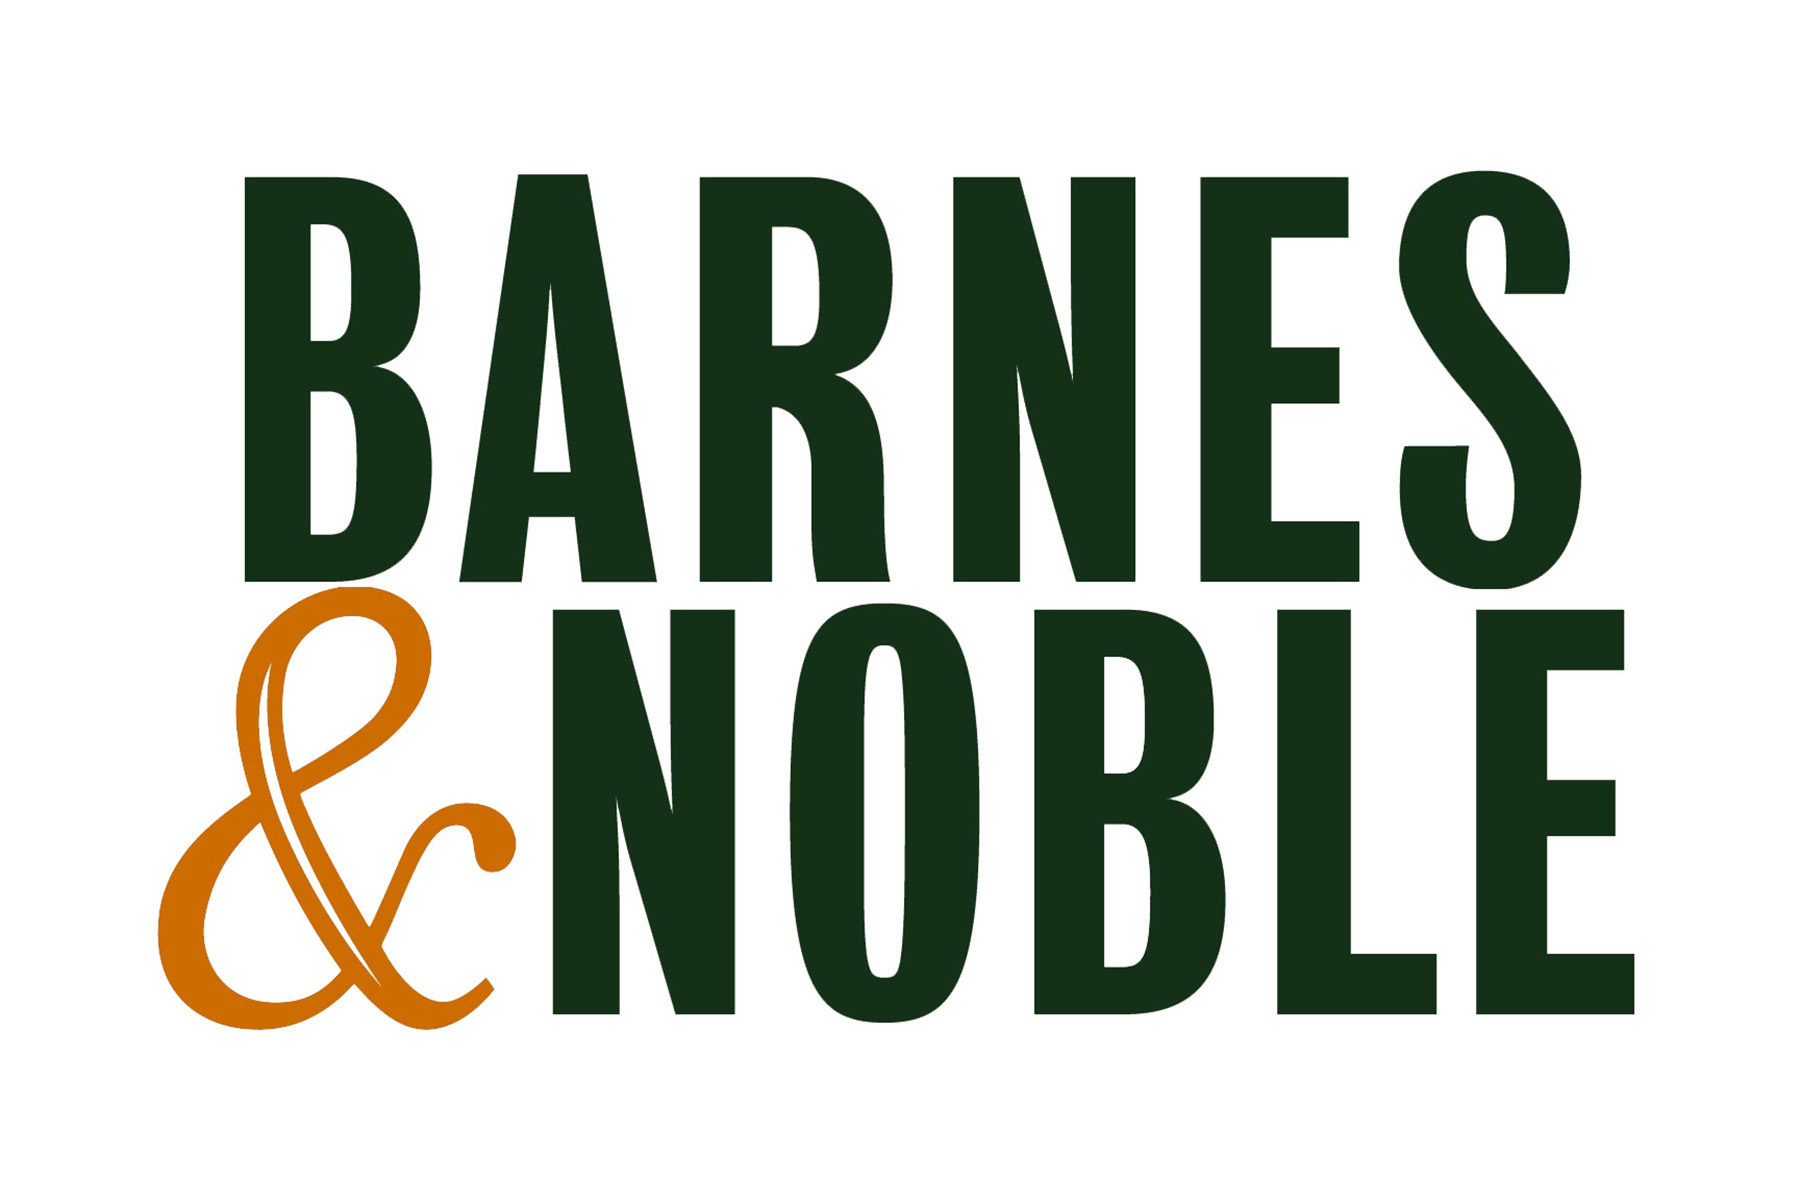 Barnes and noble clipart.